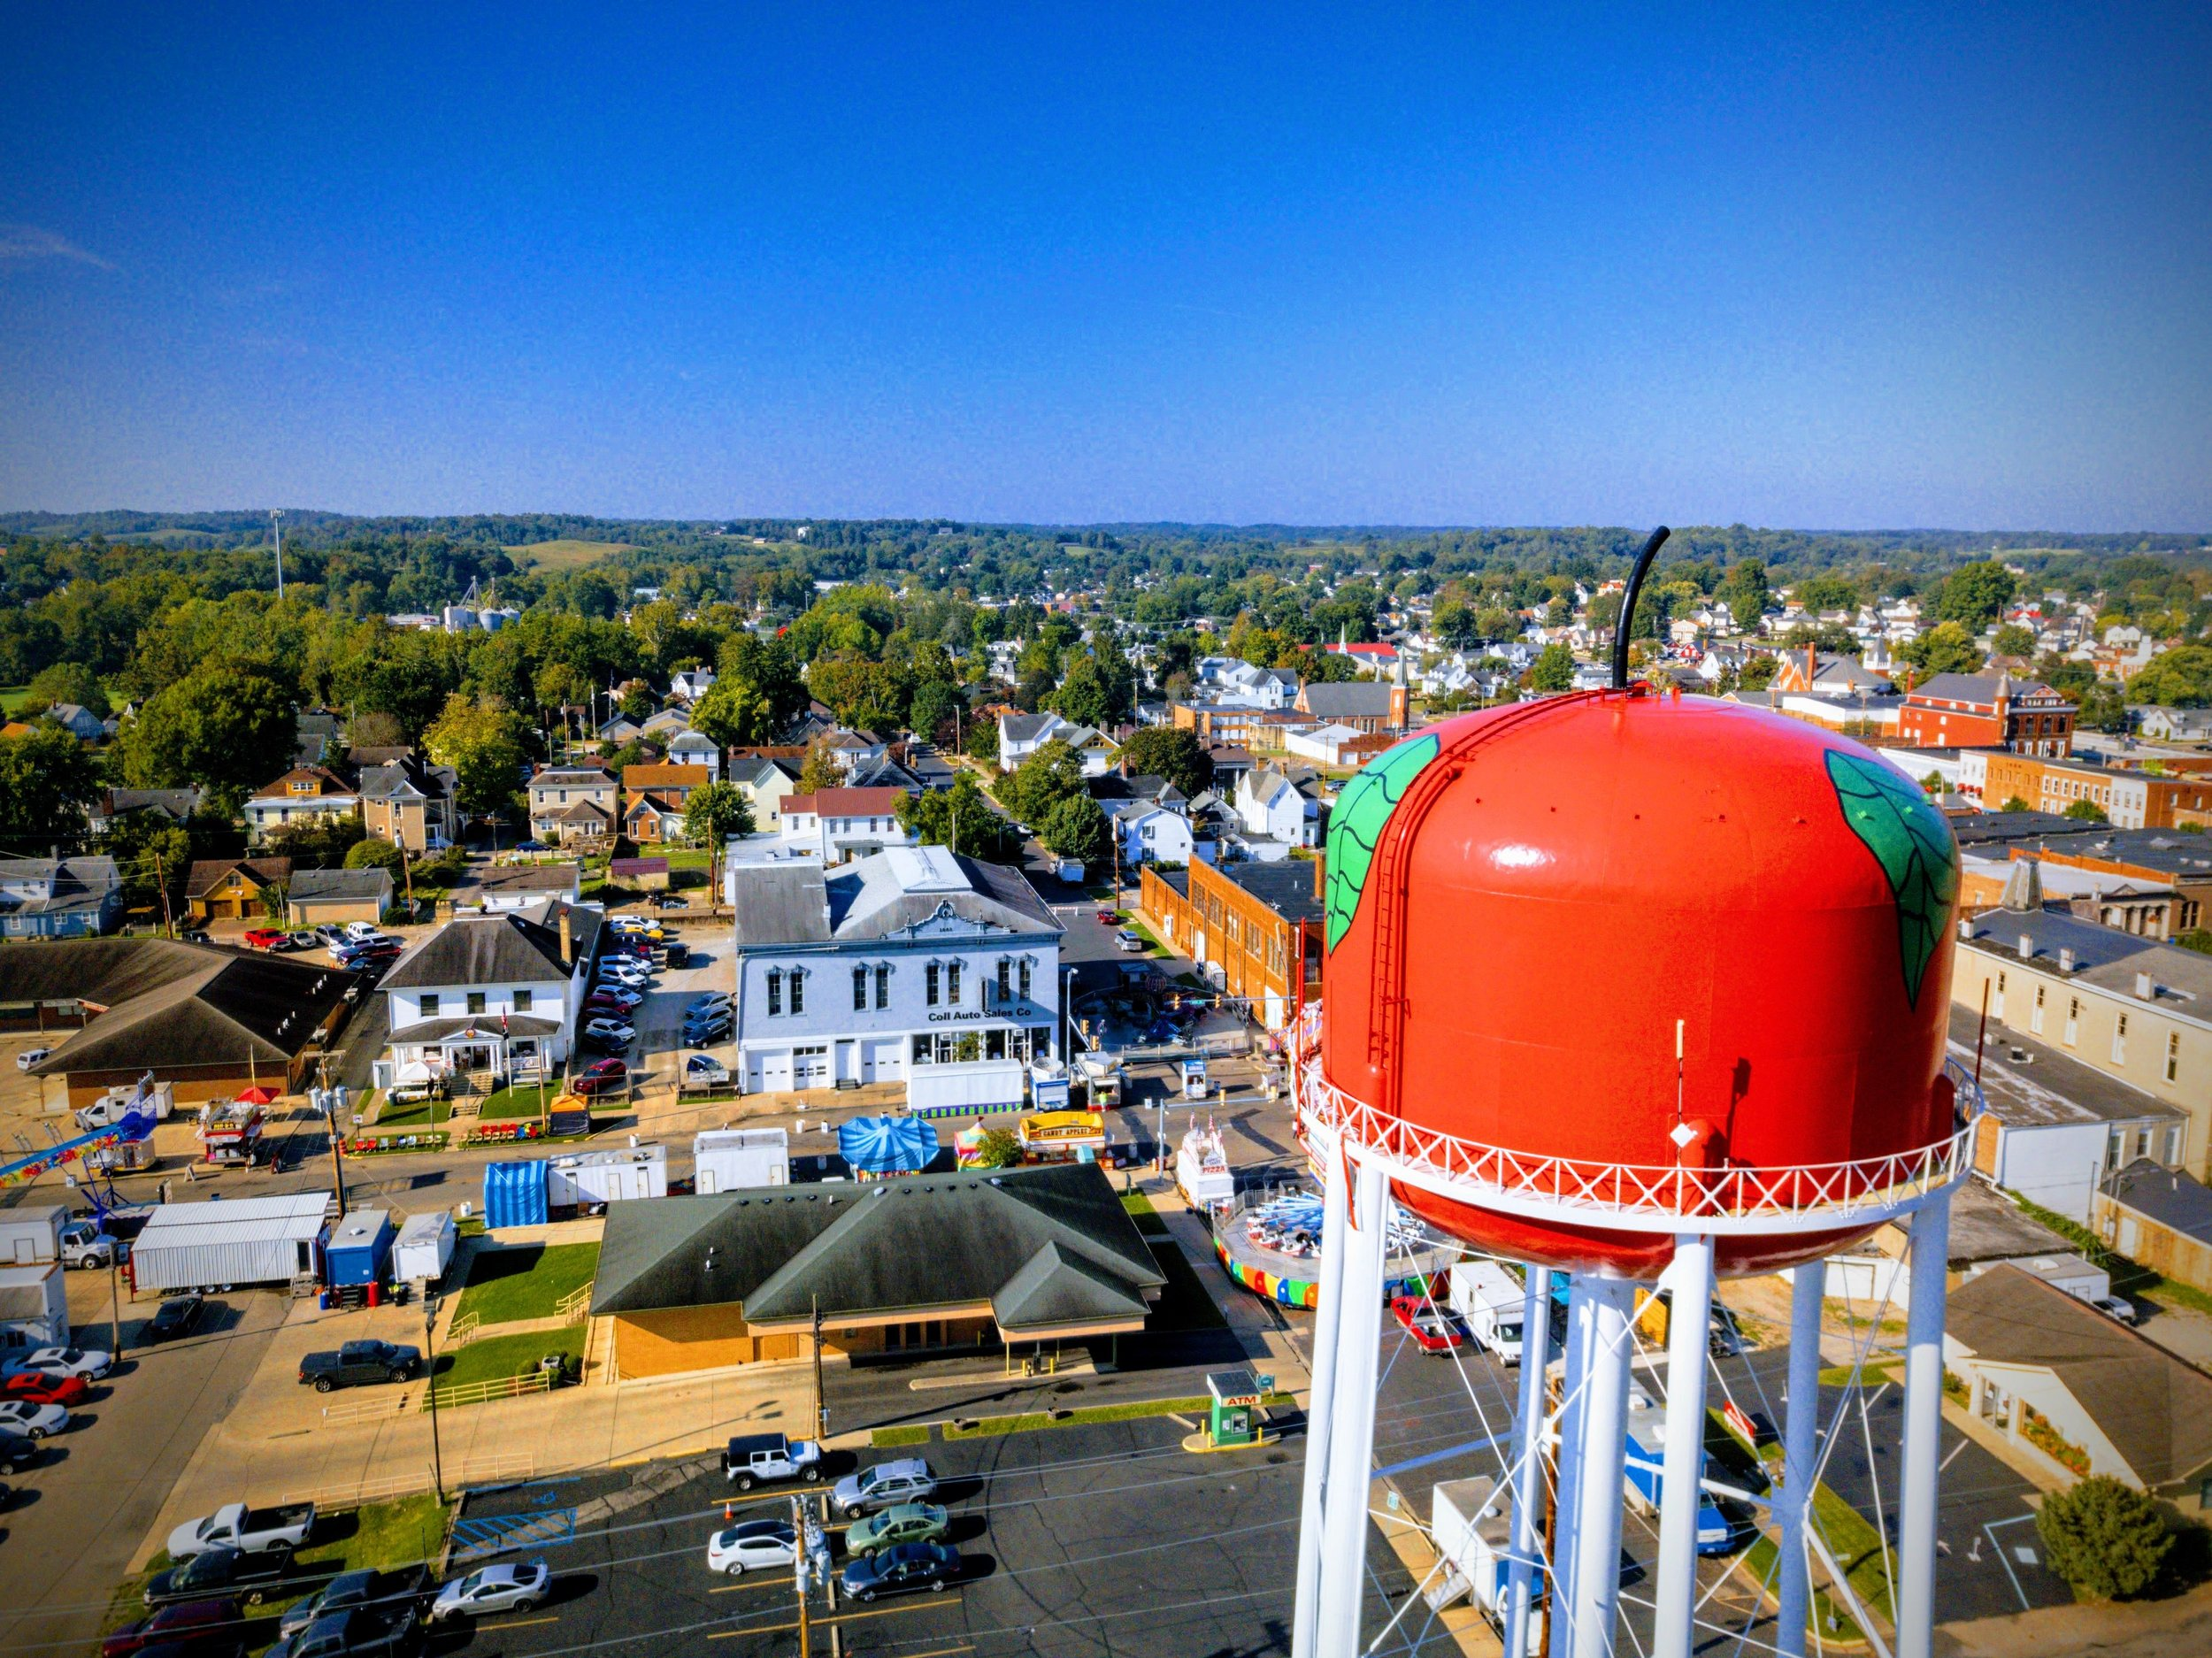 The iconic Jackson water tower is one of only a few food-based water towers in the country